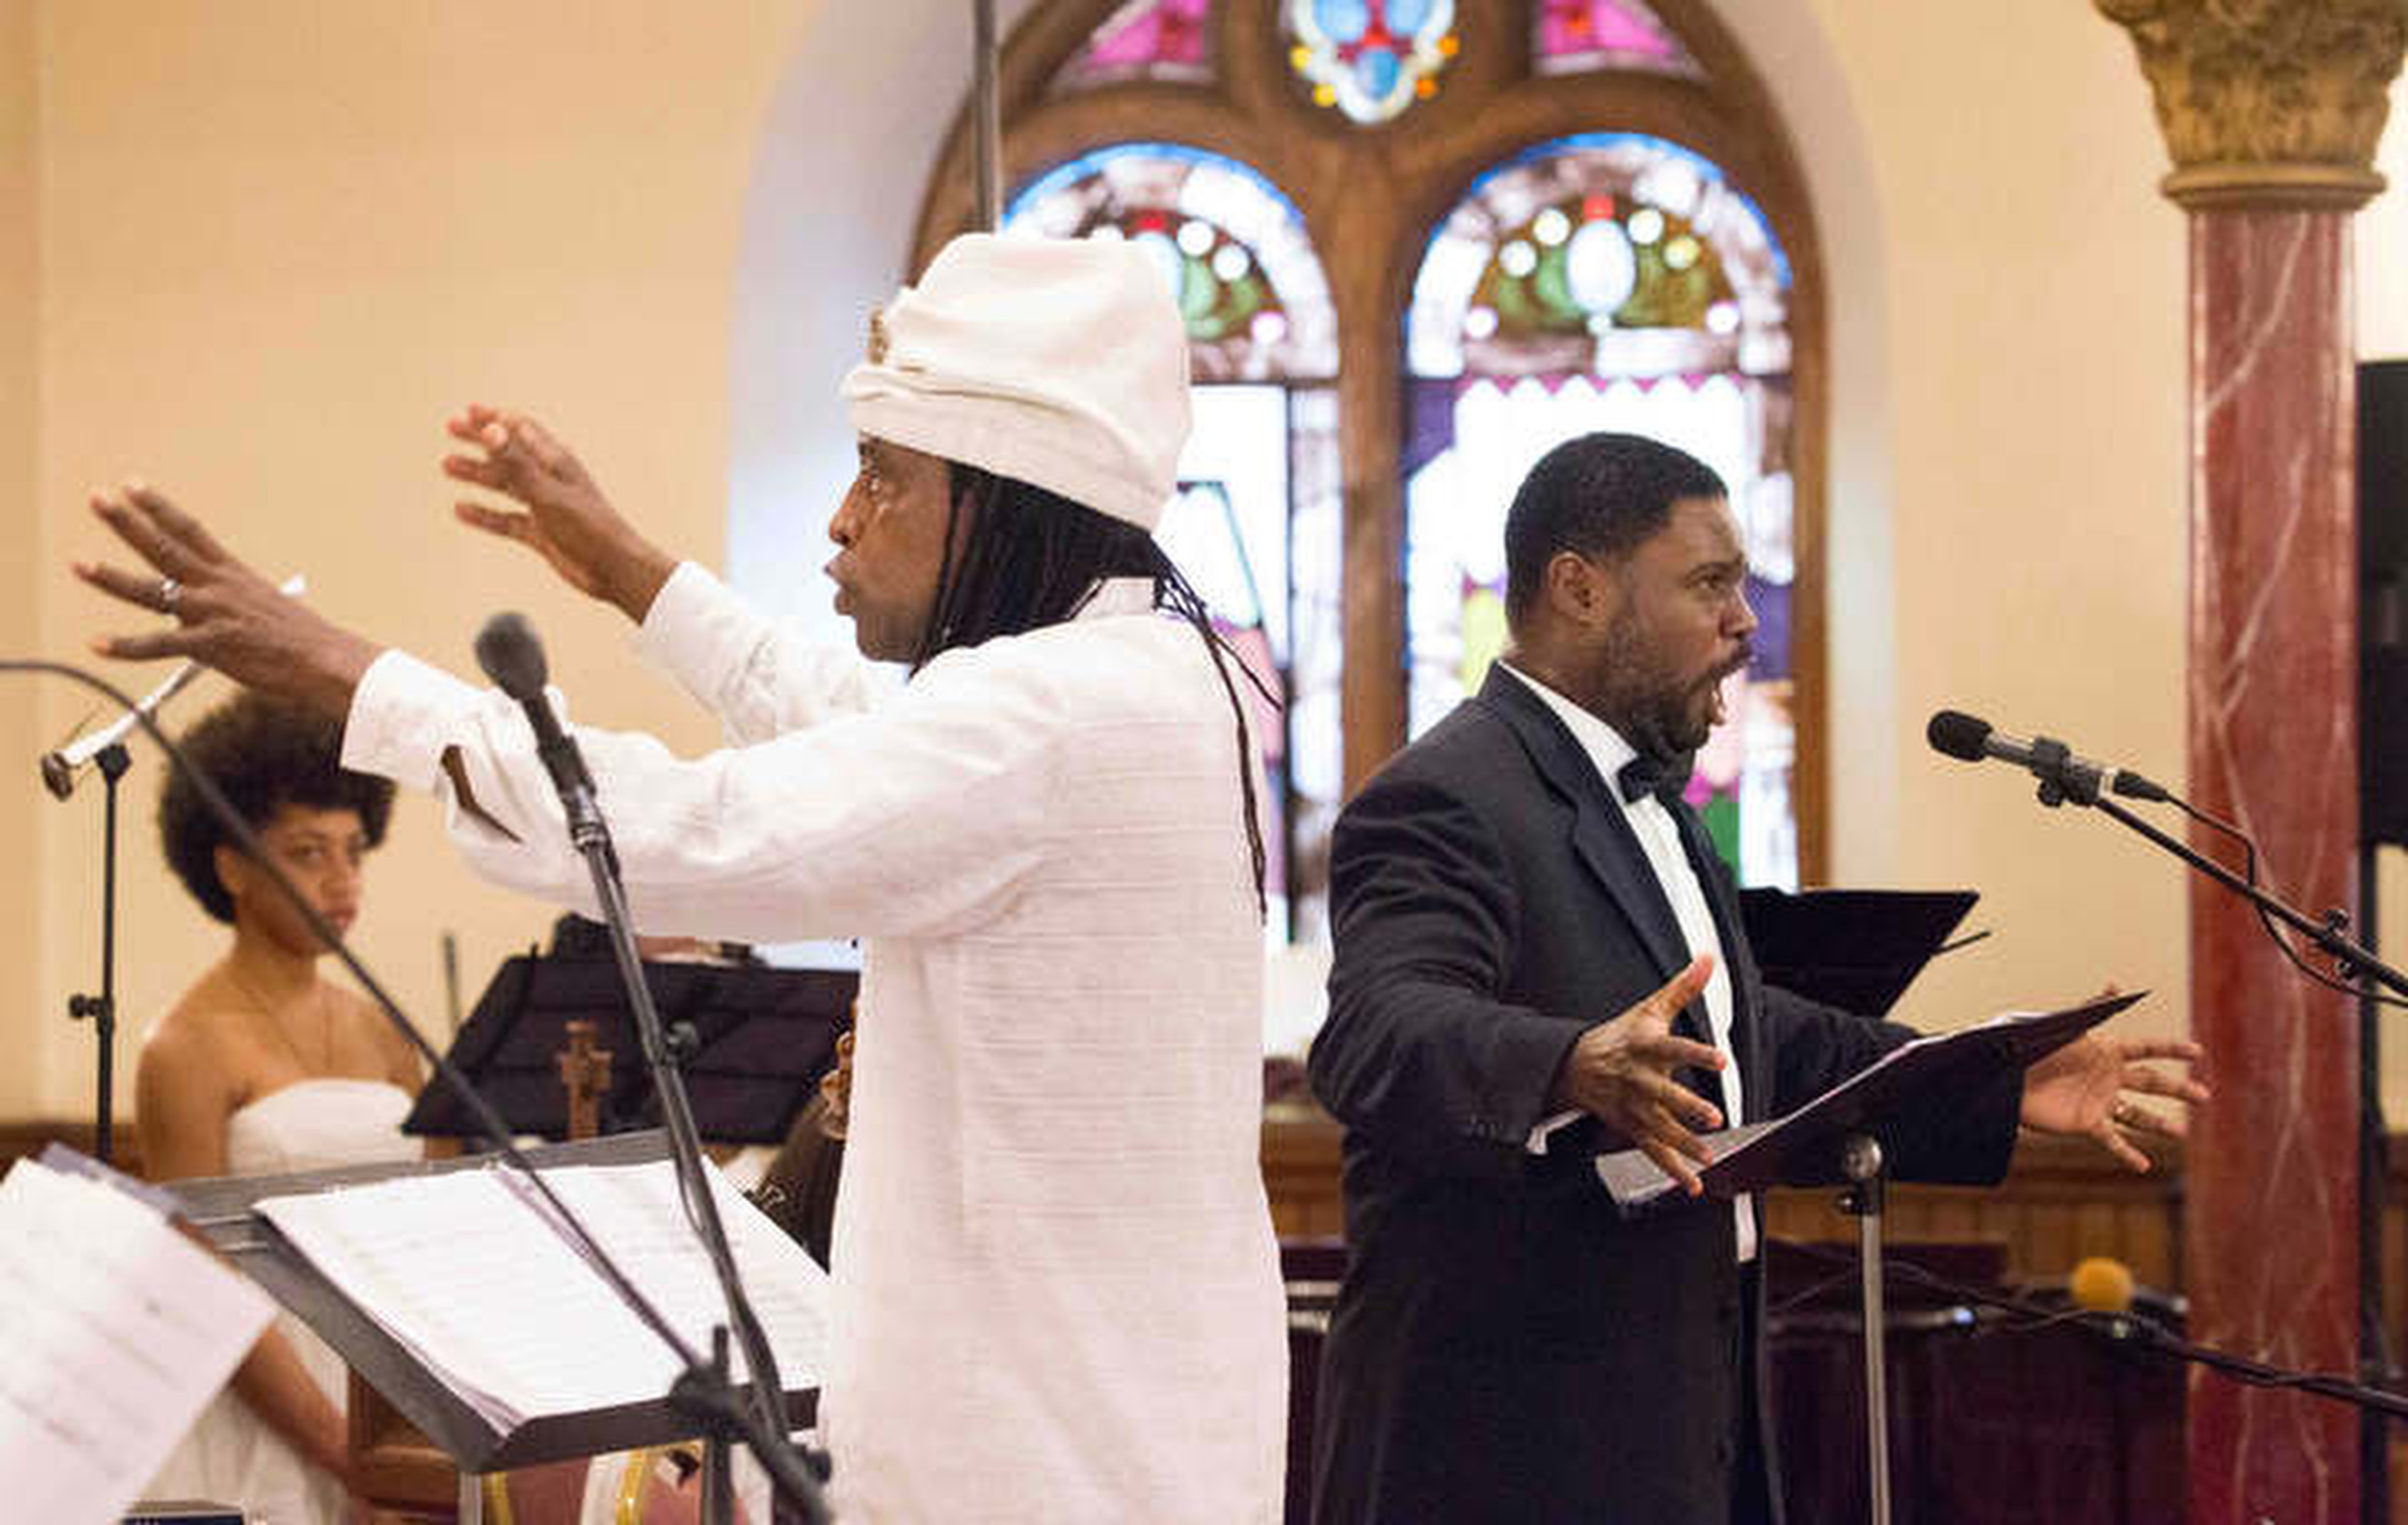 Philadelphia Orchestra Music Alive Composer-in-Residence Hannibal Lokumbe, left, and Rodrick Dixon as Tenor, right, performing the world premiere of Crucifixion Resurrection: Nine Souls a Traveling, at the Mother Bethel African Methodist Episcopal Church, Saturday, June 17, 2017.